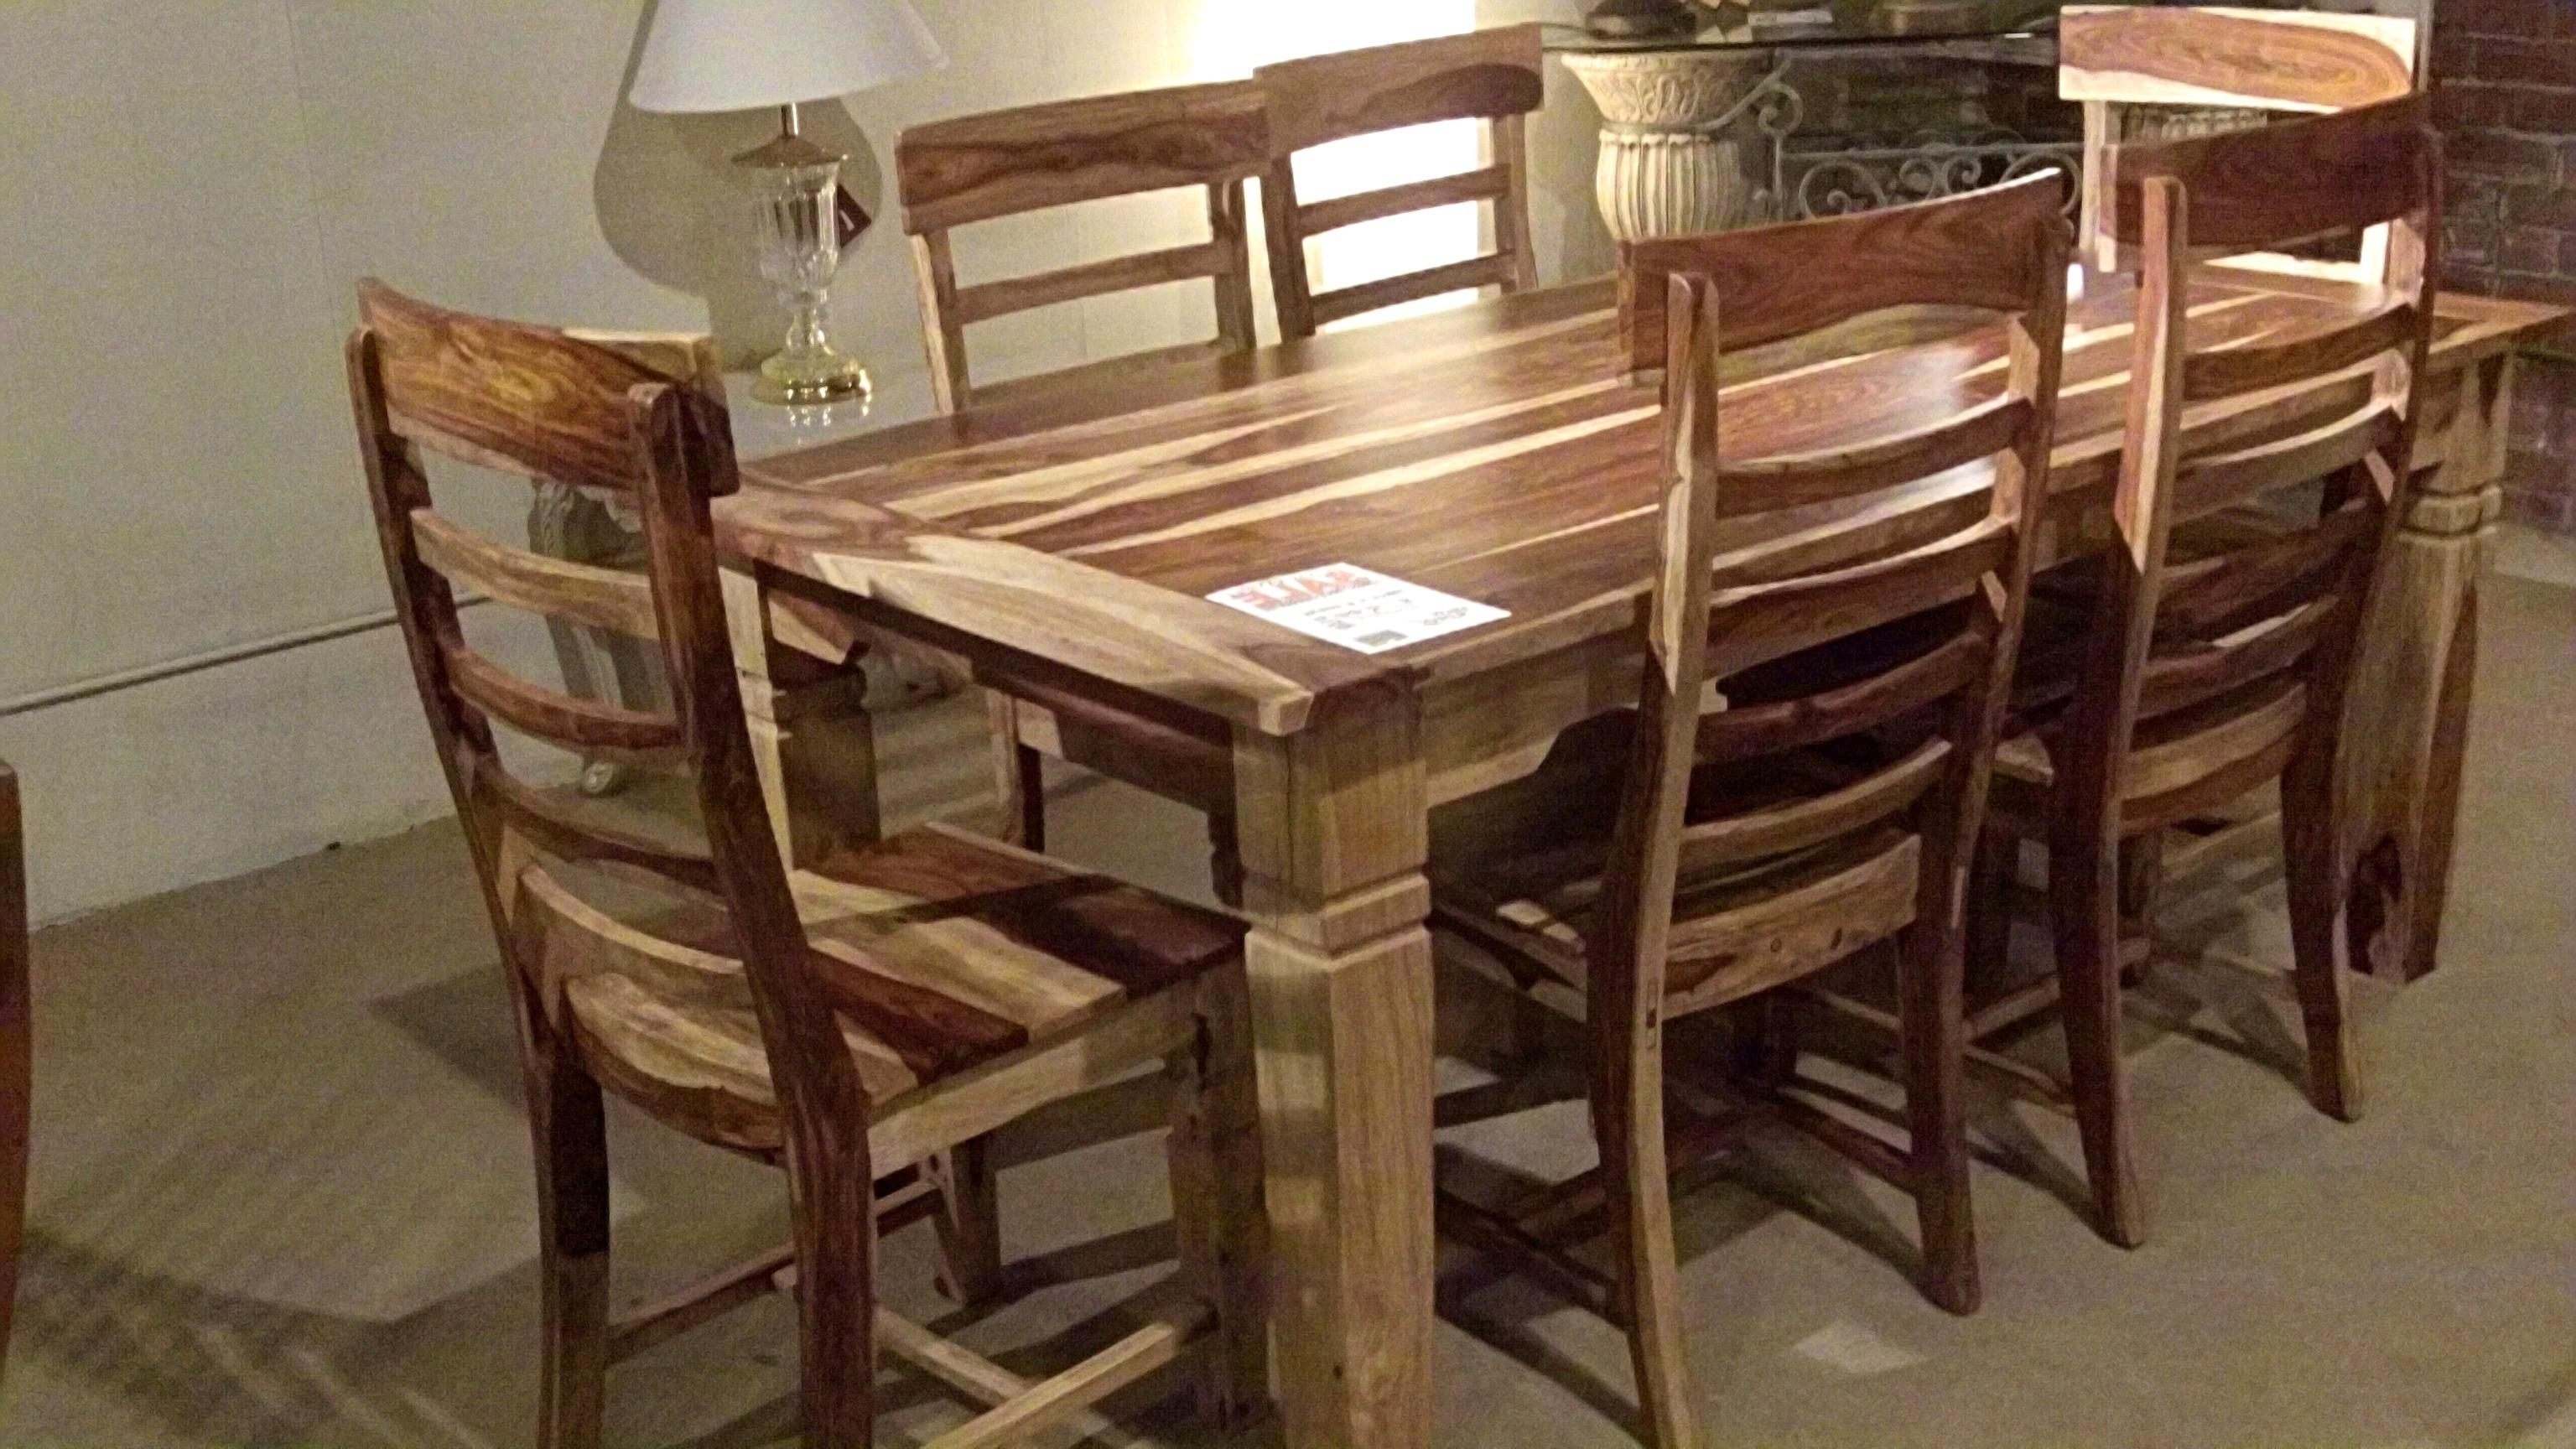 Phenomenal Sheesham Wood Dining Table Cm Within Most Up To Date Sheesham Dining Tables And Chairs (Gallery 25 of 25)